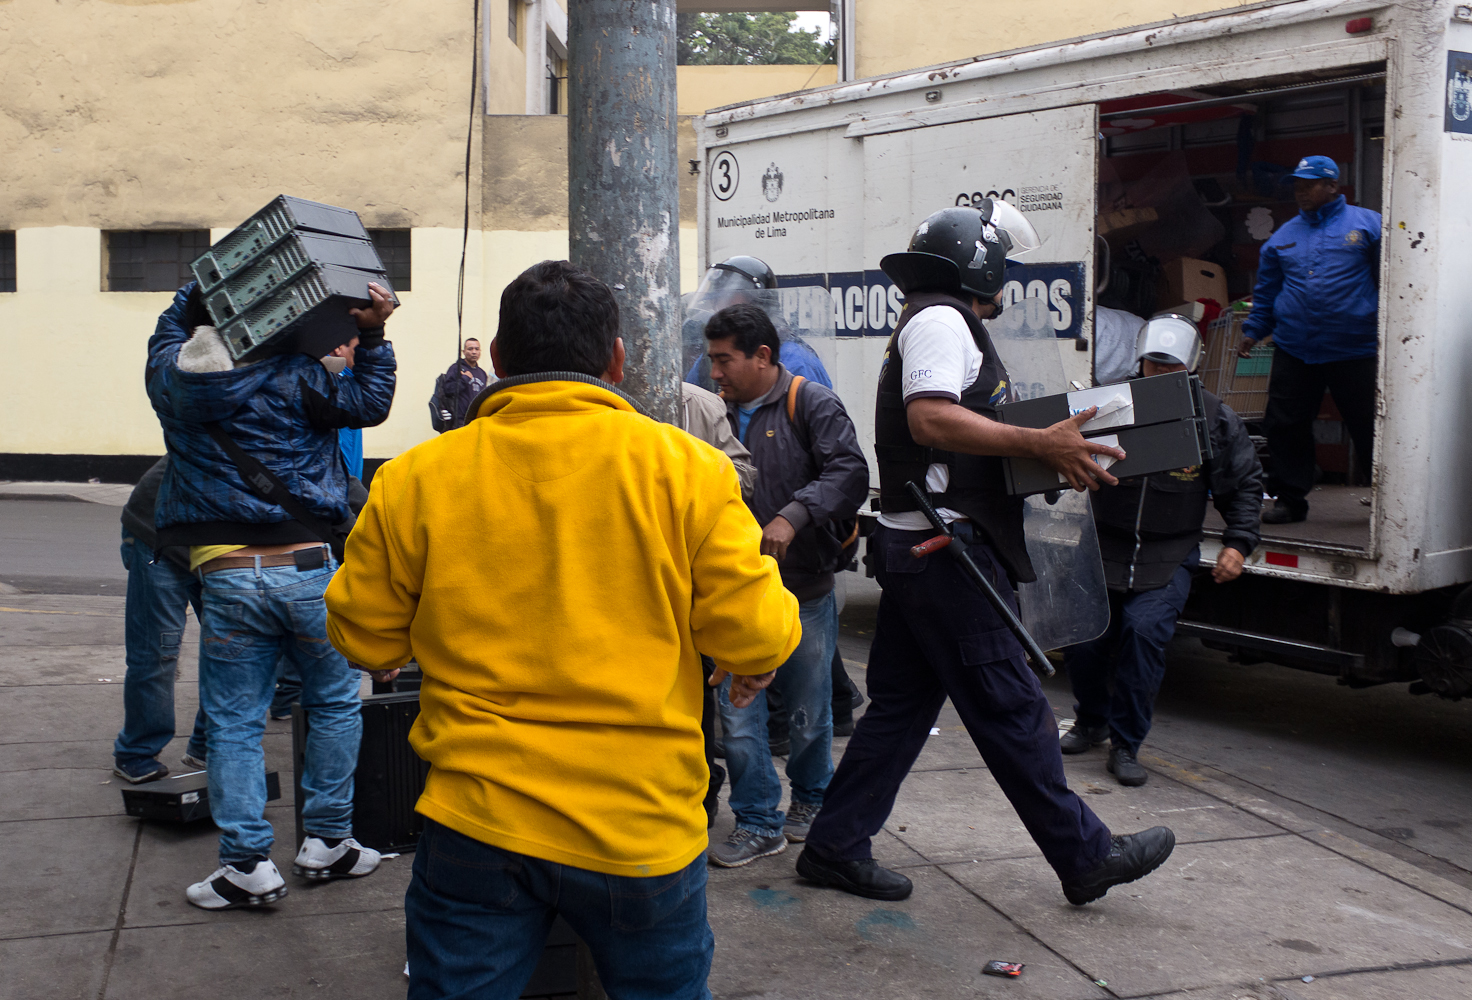 Police conduct a raid on Leticia street, confiscating used PCs for sale that were displayed on the sidewalk seconds earlier. Police periodically raid the informal sector that operates in the open to discourage the practice of informal resale or to confiscate equipment they assume include stolen goods. Police wear masks to hide their identity for fear of personal retaliation if people recognize them.